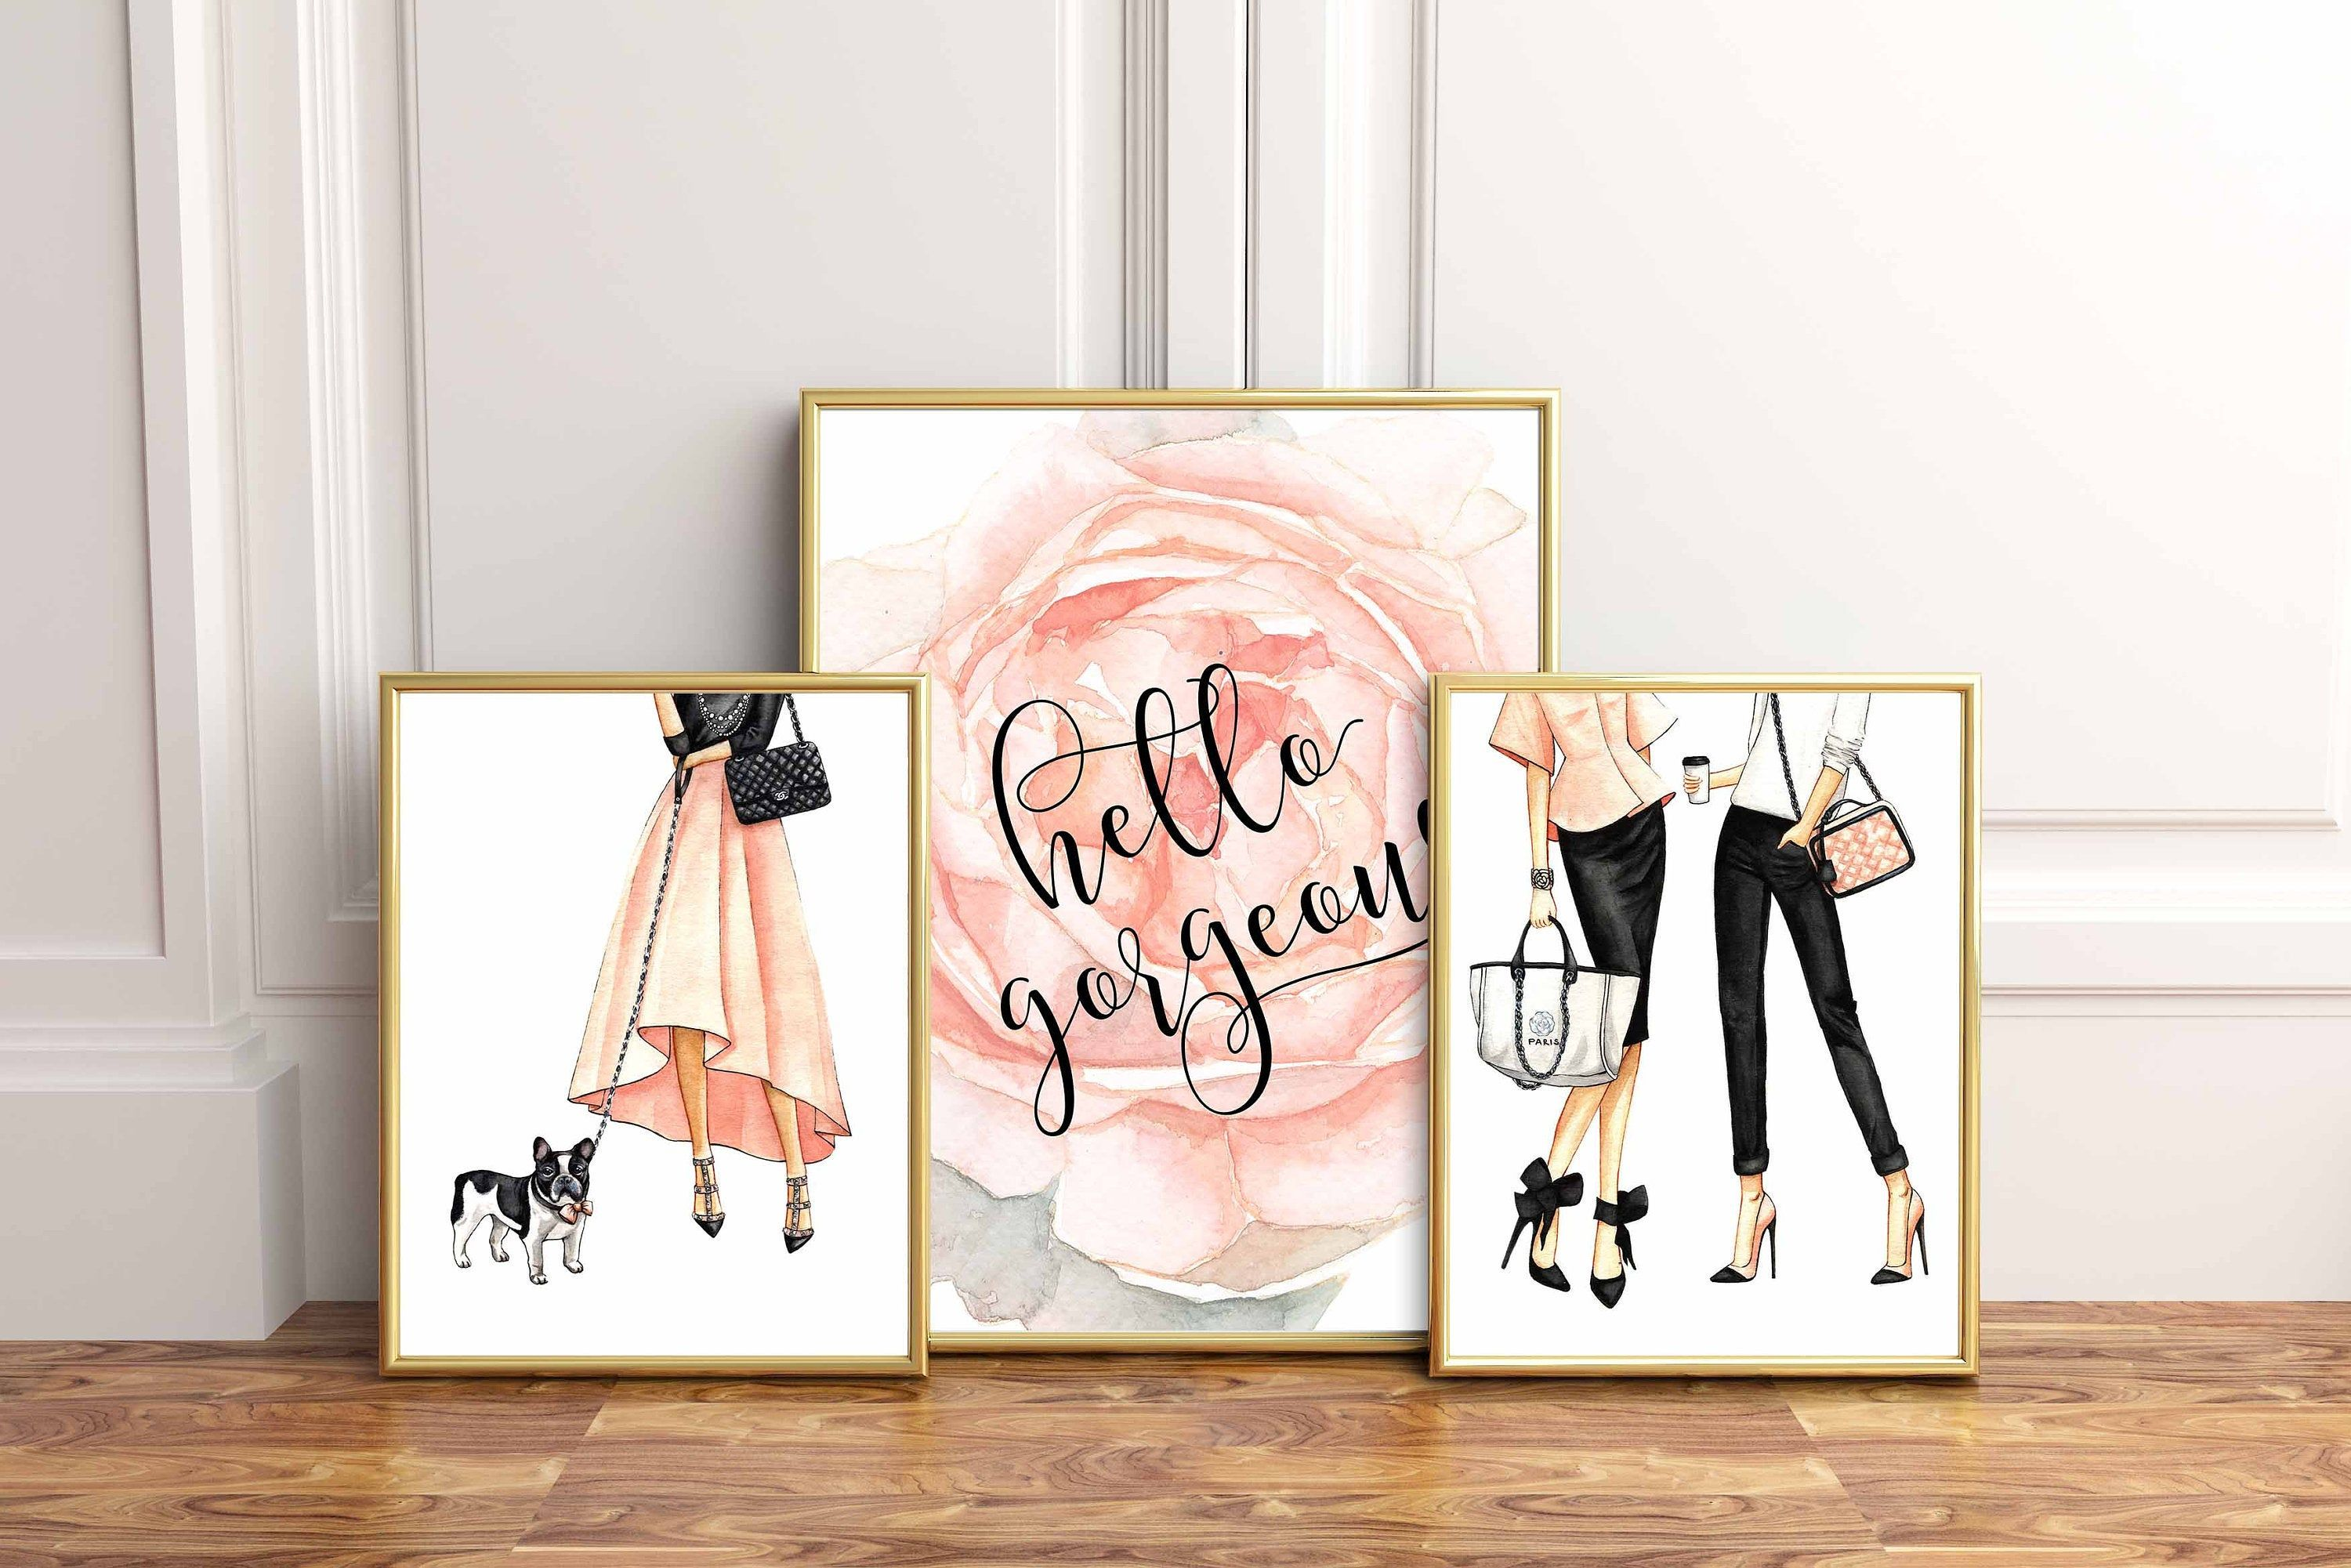 Fashion Wall Art Fashion Prints Fashion Illustration Fashion Poster Girls Bedroom Wall Decor Printable Fashion Fashion Art Blush Decor Glam In 2021 Blush Decor Wall Decor Bedroom Girls Wall Decor Printables